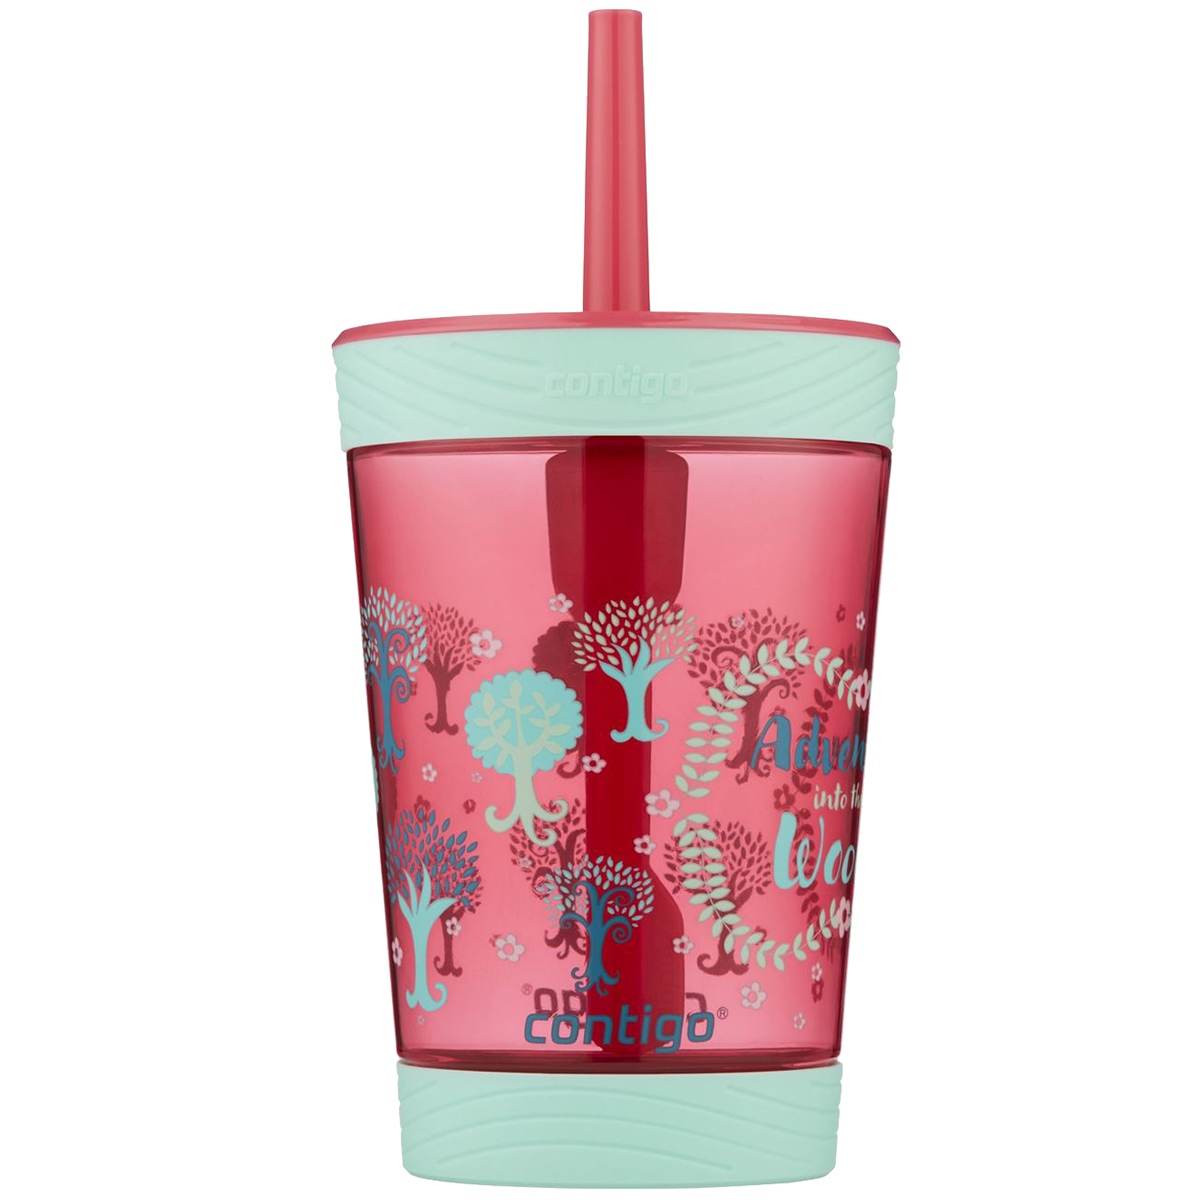 Contigo-14-oz-Kid-039-s-Spill-Proof-Sippy-Cup-Tumbler-with-Straw thumbnail 12